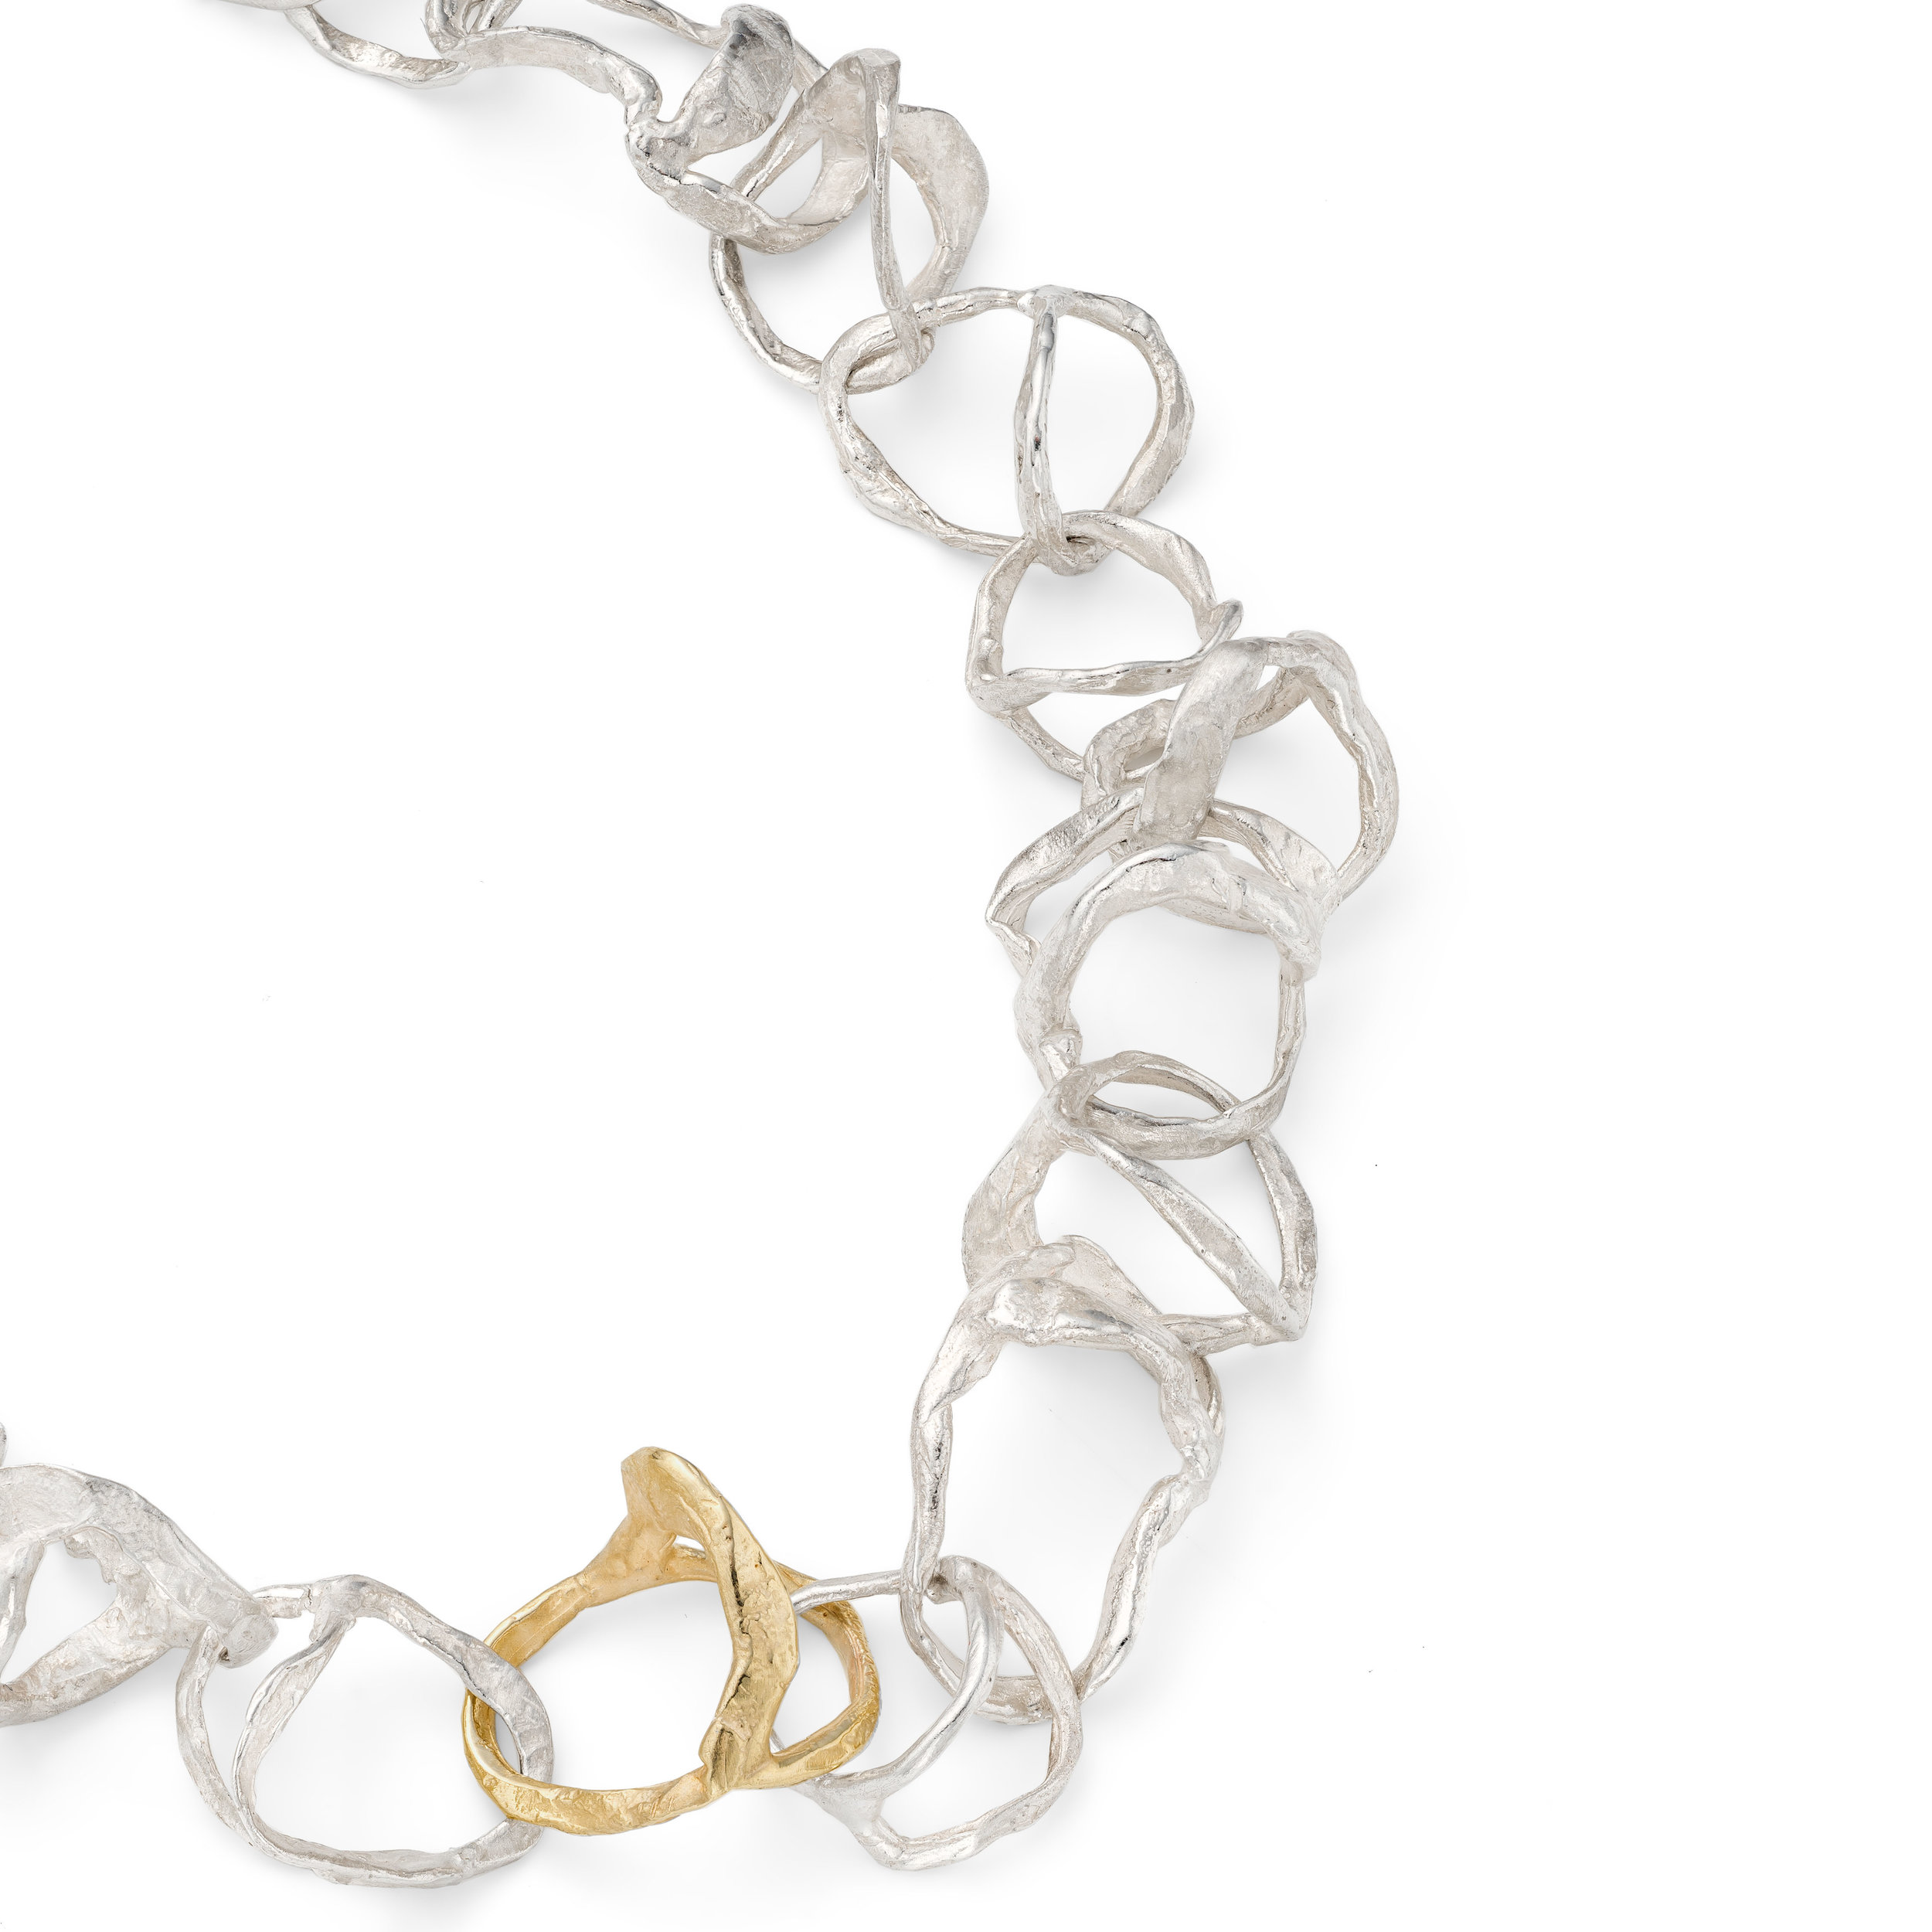 Tangle Necklace with 9ct Gold link (1).jpg